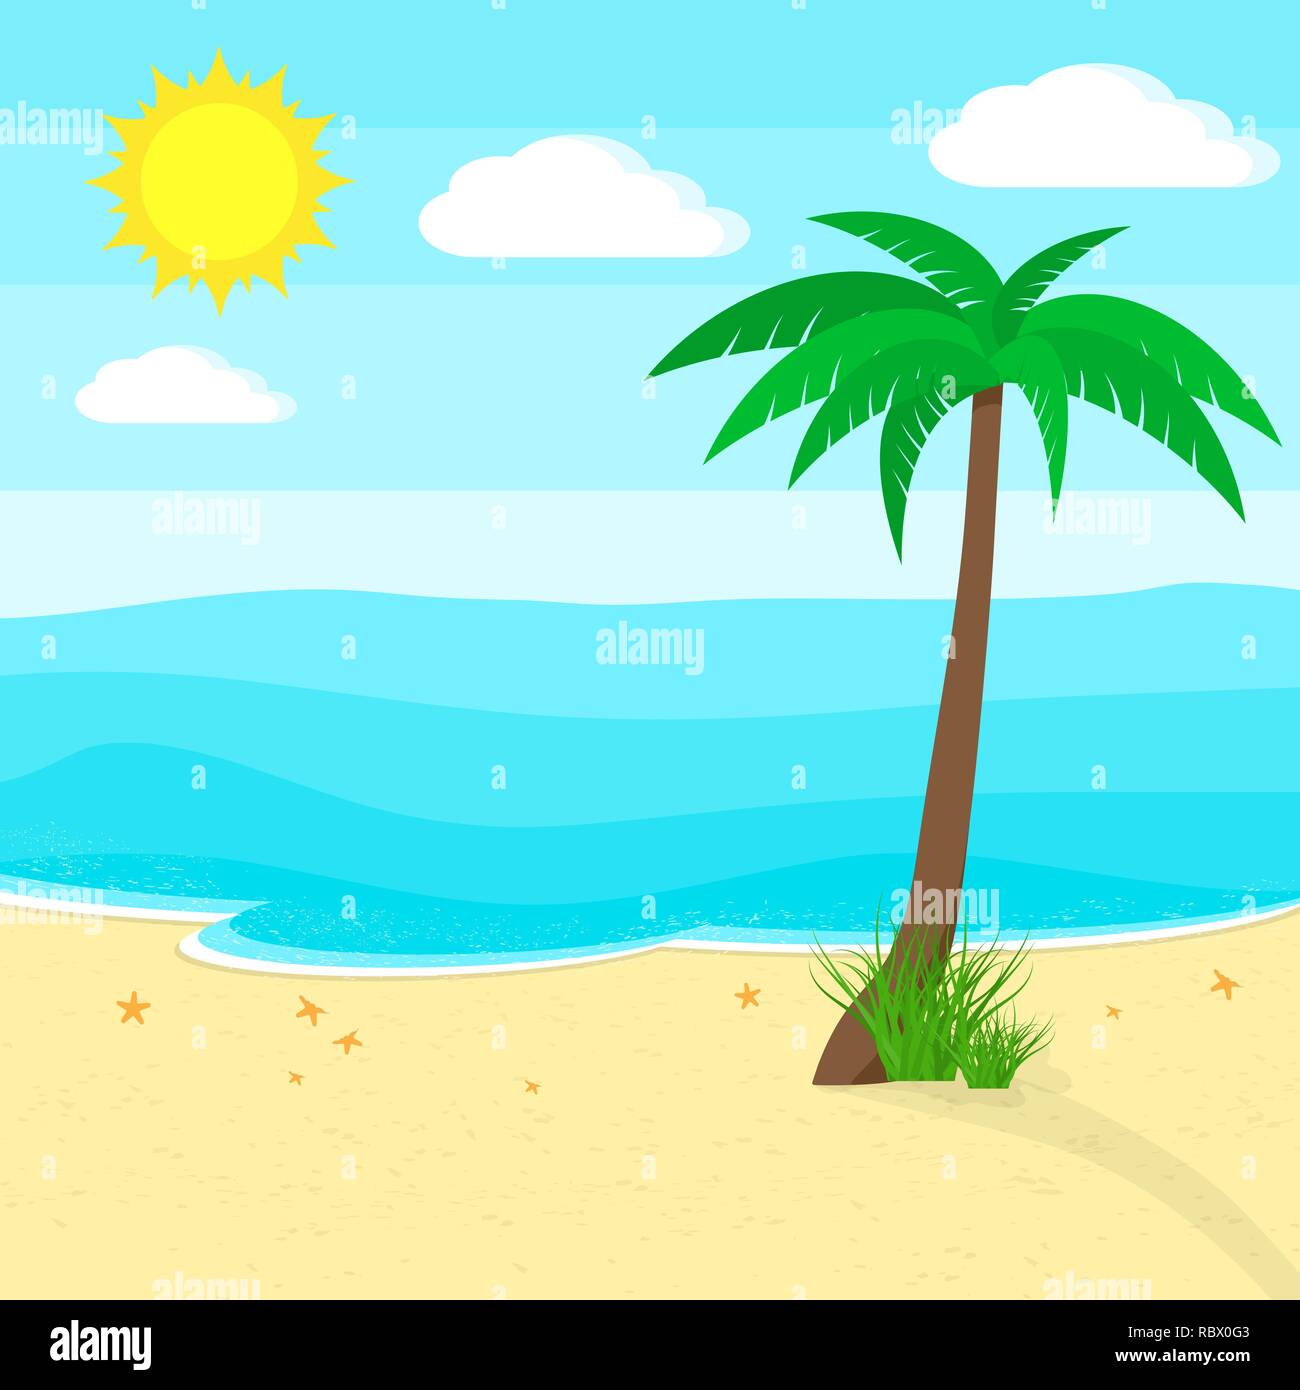 Ocean and beach with palm tree in flat design. Vector illustration. Travel or vacation concept - Stock Vector